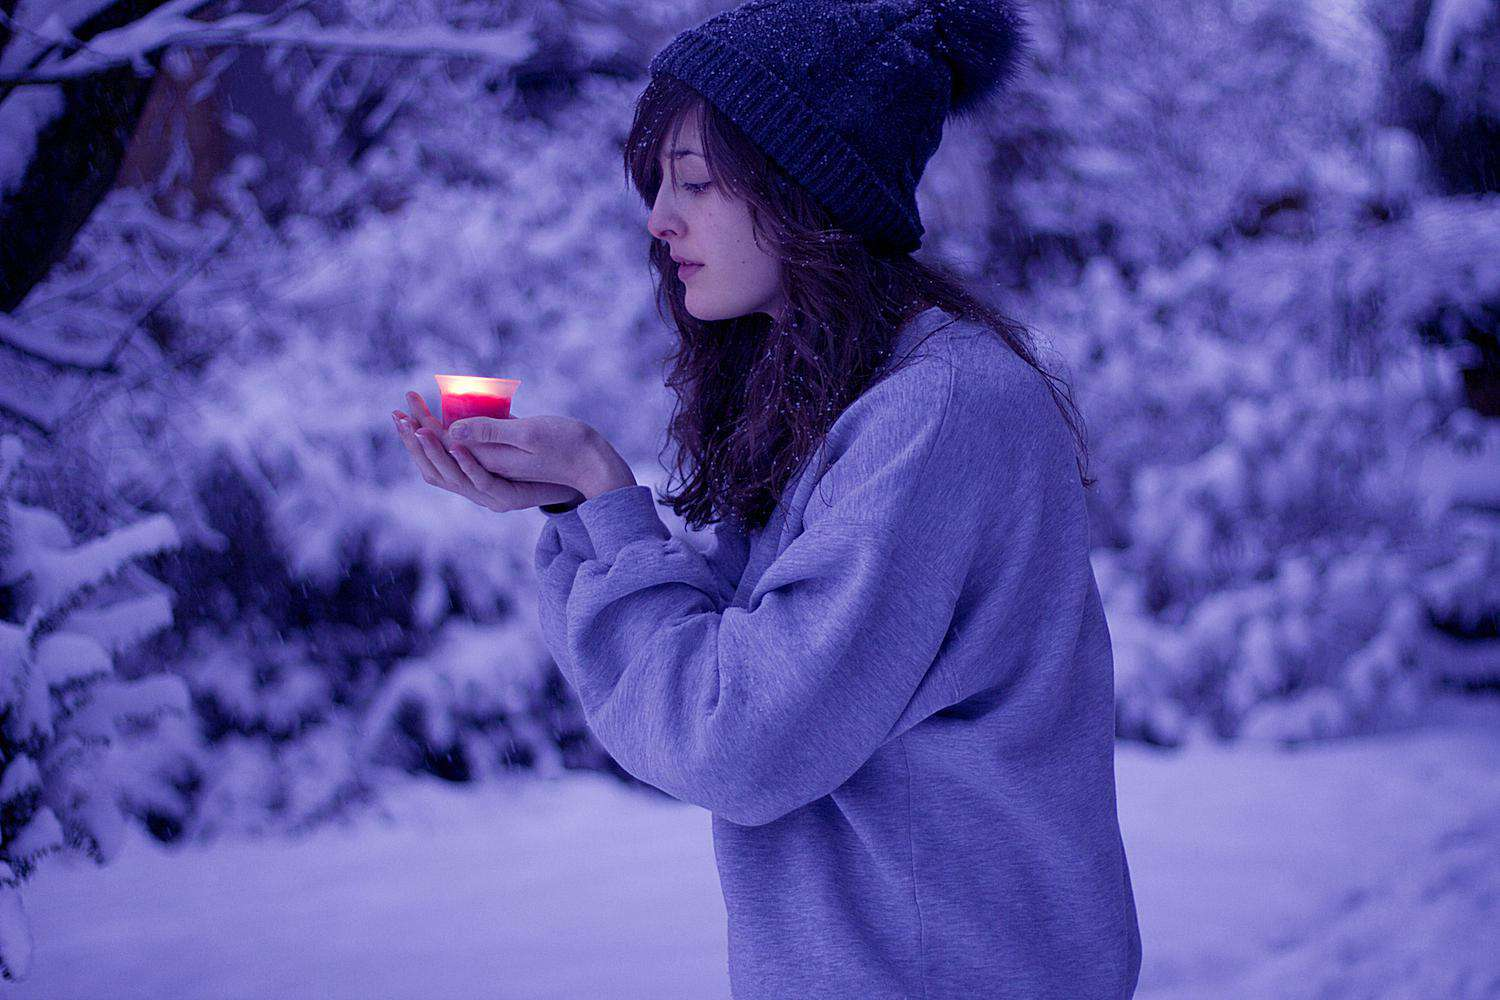 Woman with Candle in Snow